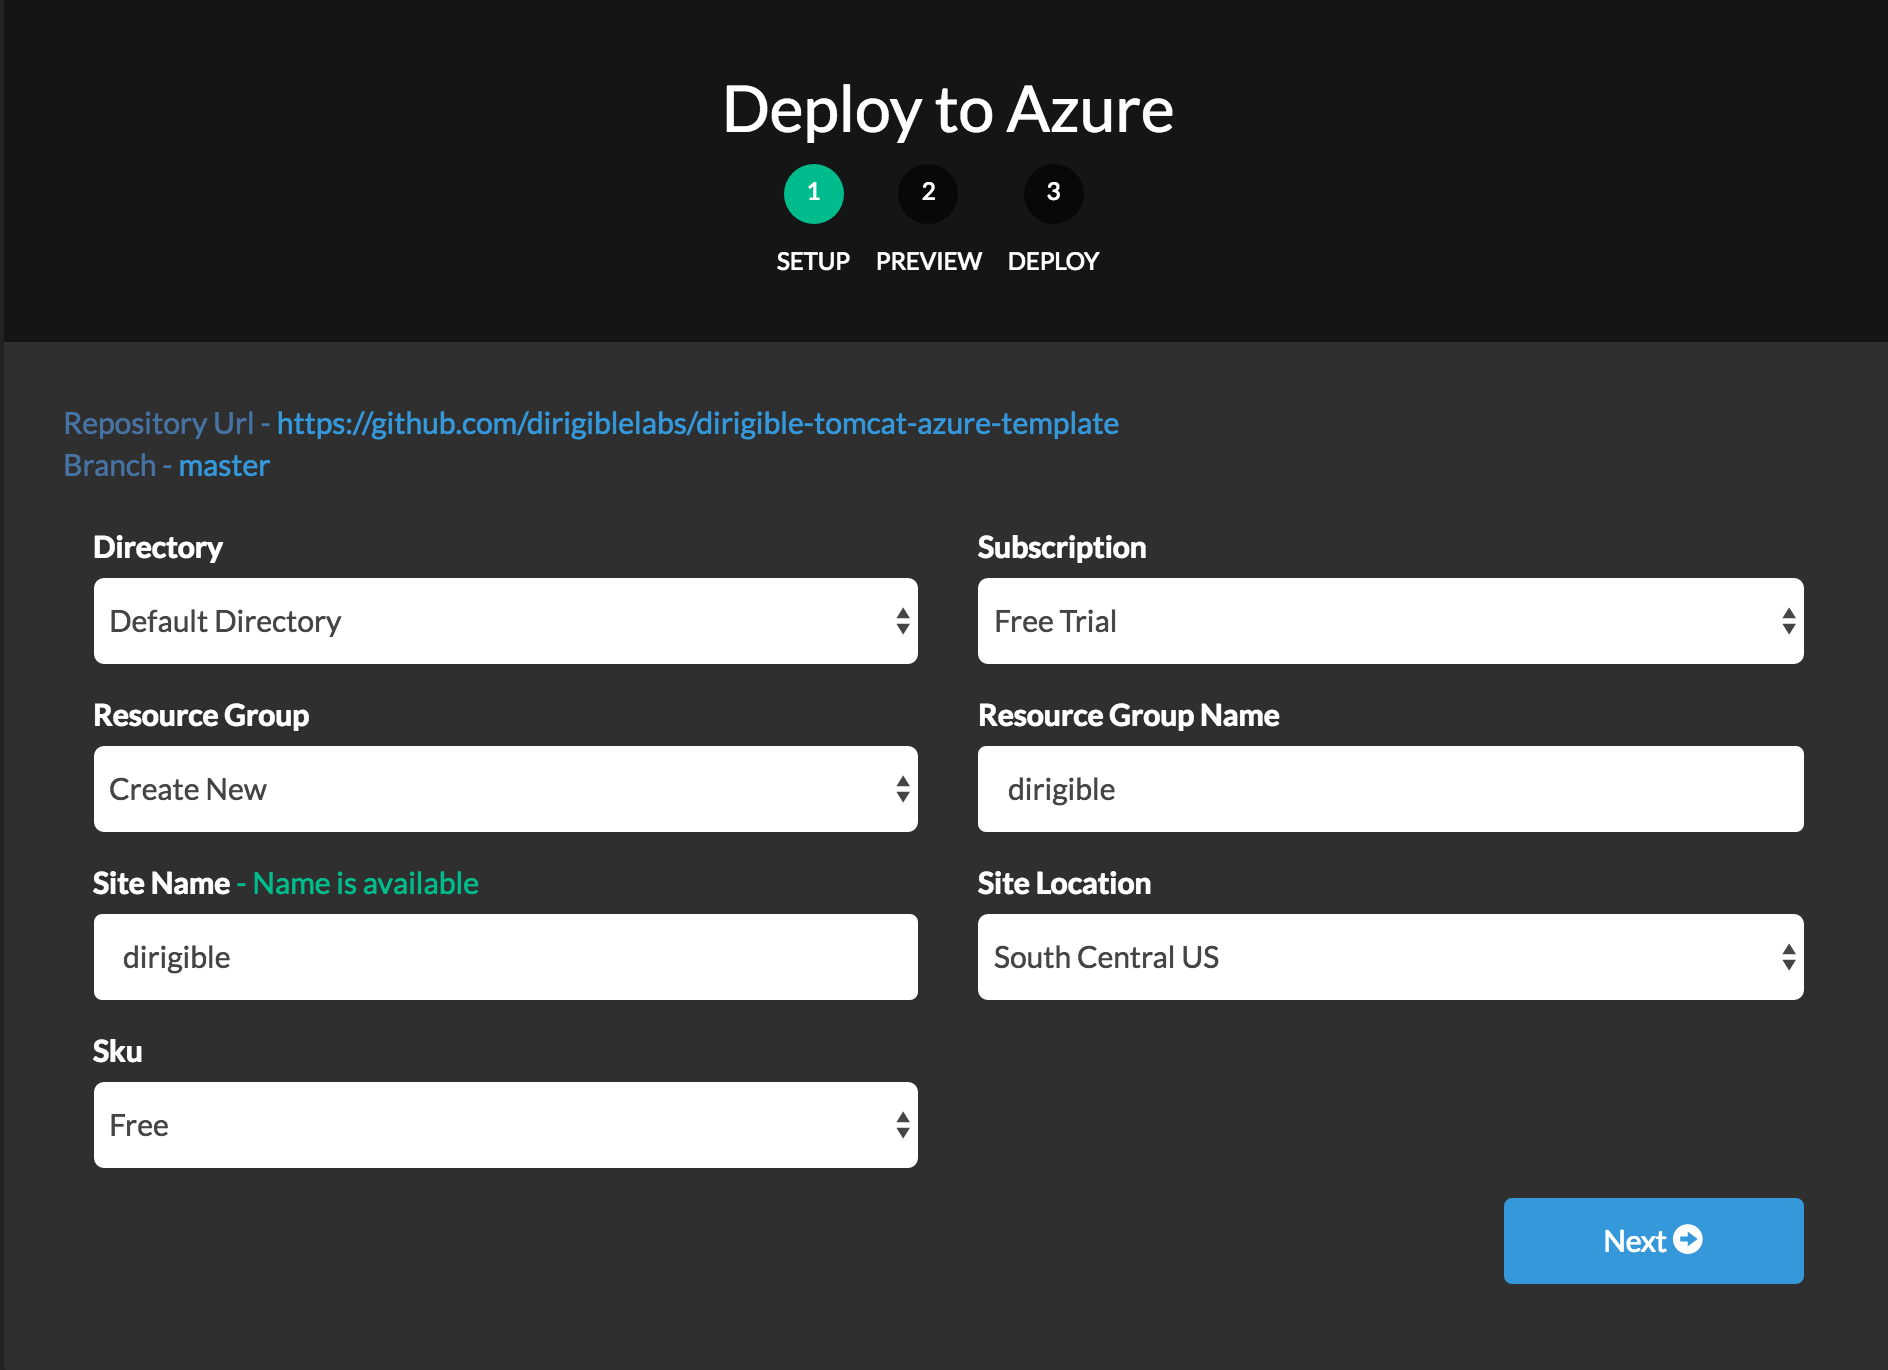 Deploy to Microsoft Azure